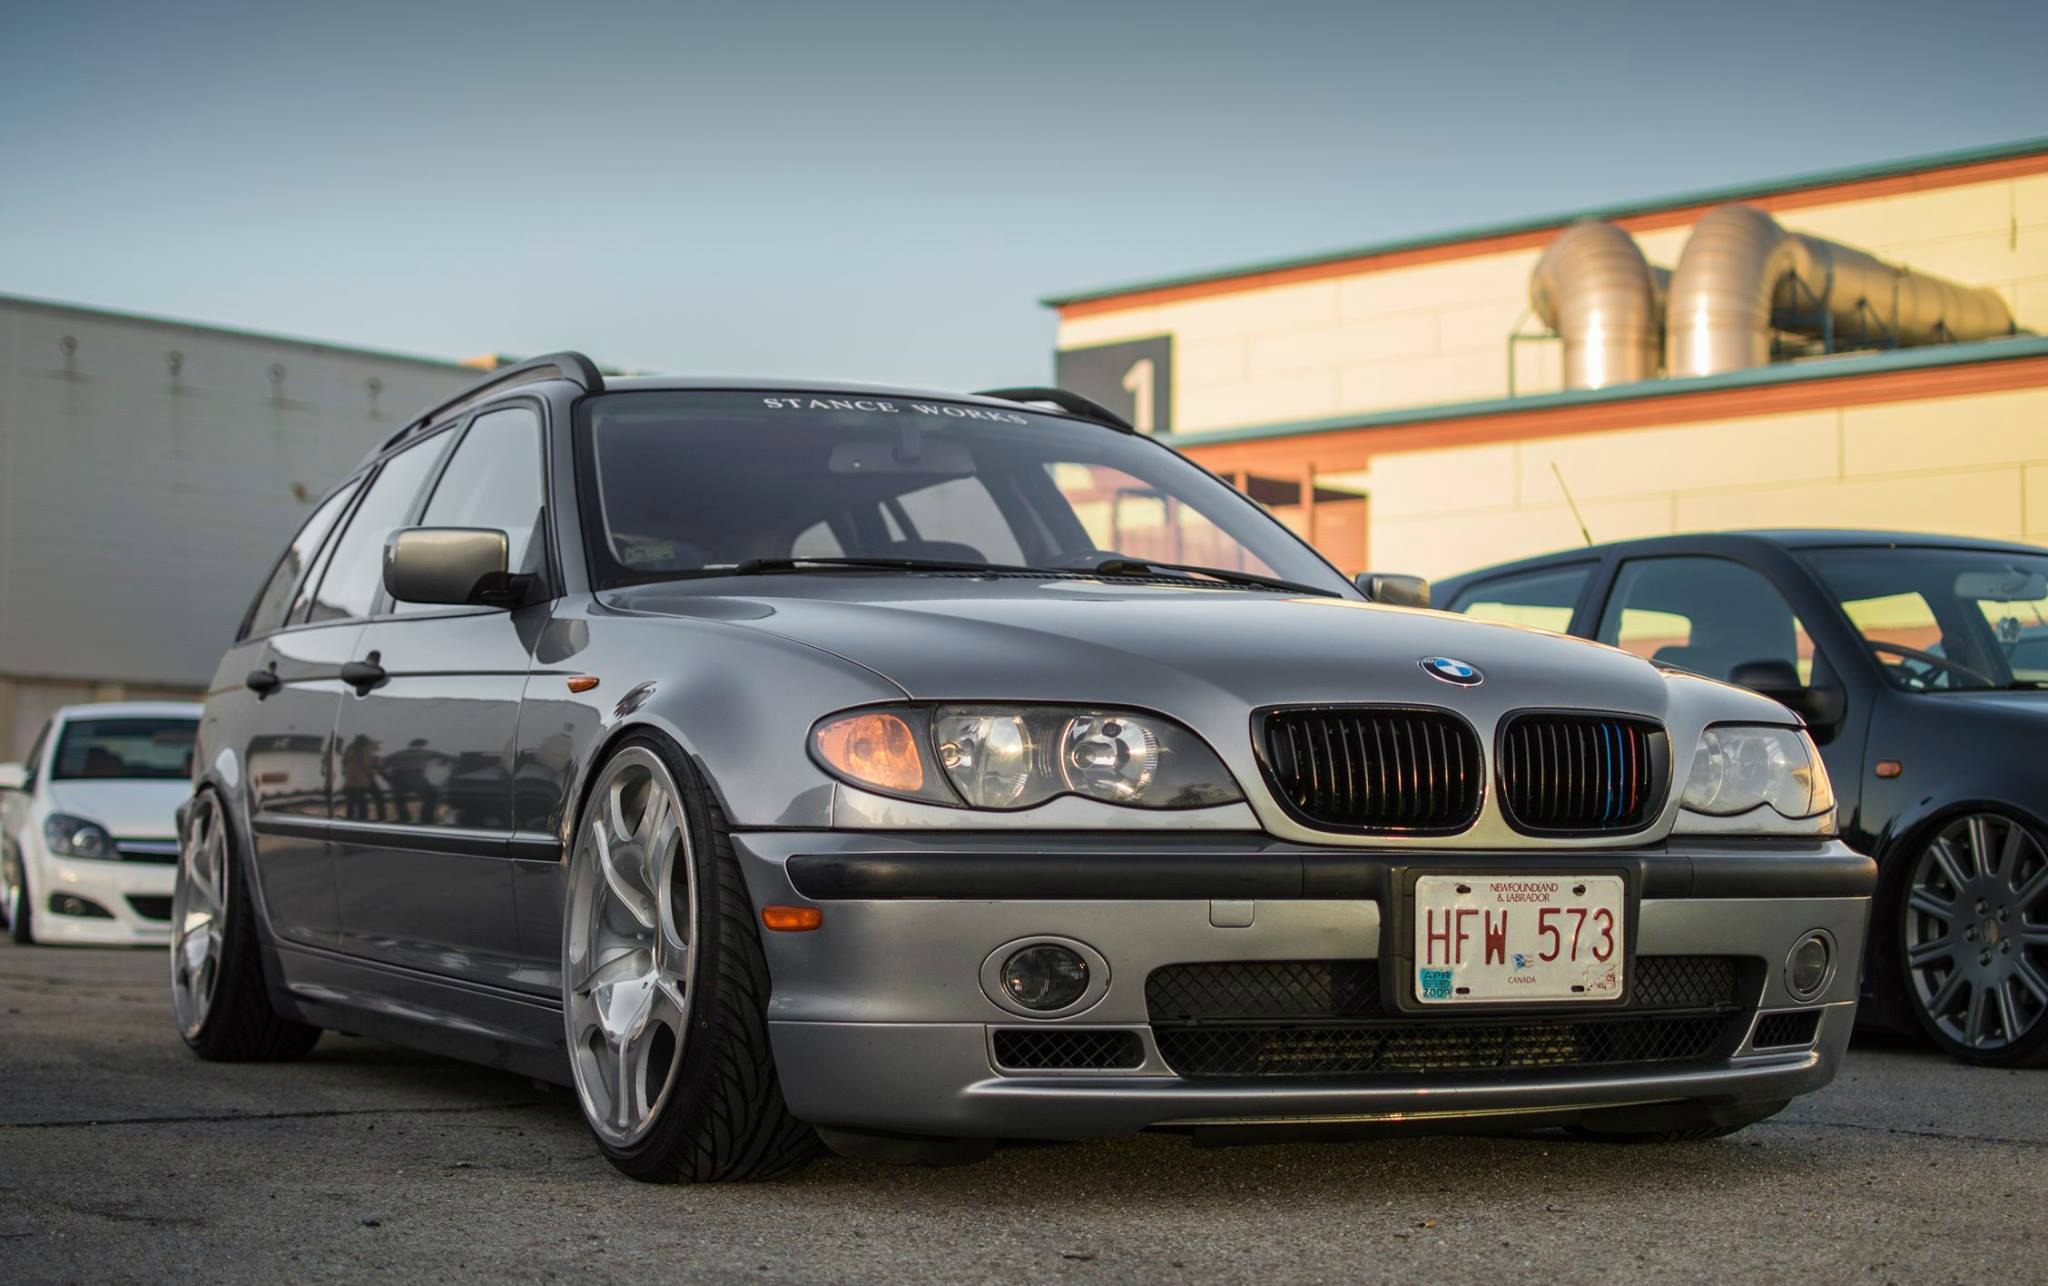 bmw e46 touring on rondell wheels wagons for dad pinterest bmw e46 bmw and wheels. Black Bedroom Furniture Sets. Home Design Ideas